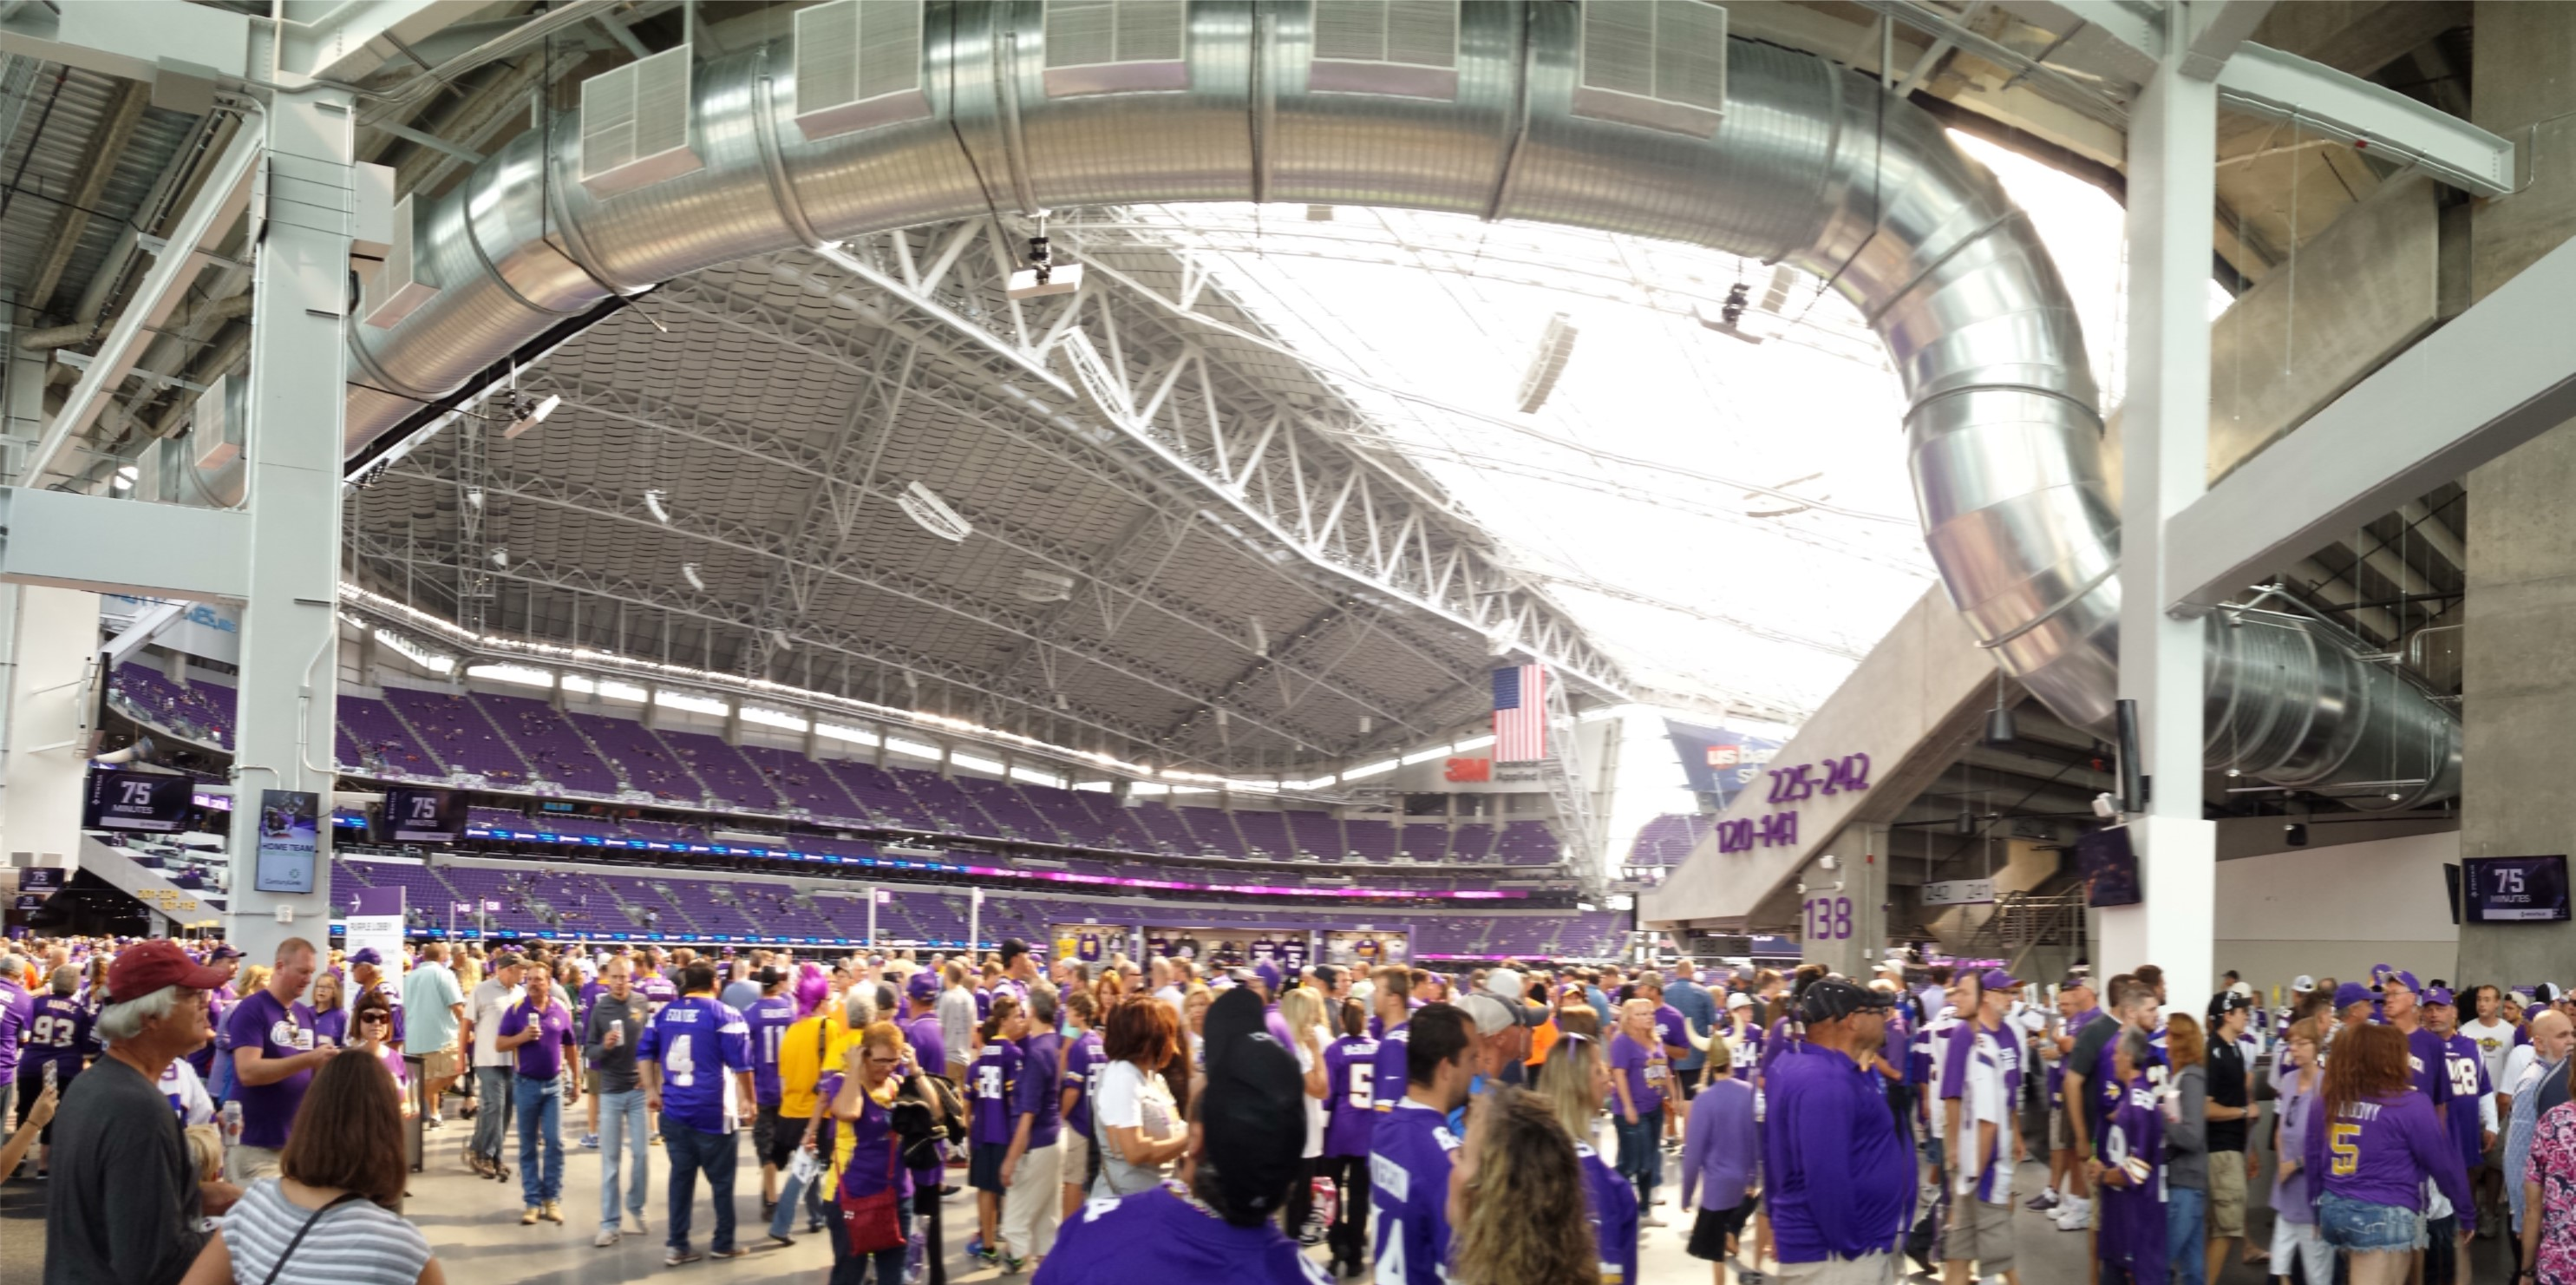 Minnesota Vikings U.S. Bank Stadium First Game - Inside the Doors